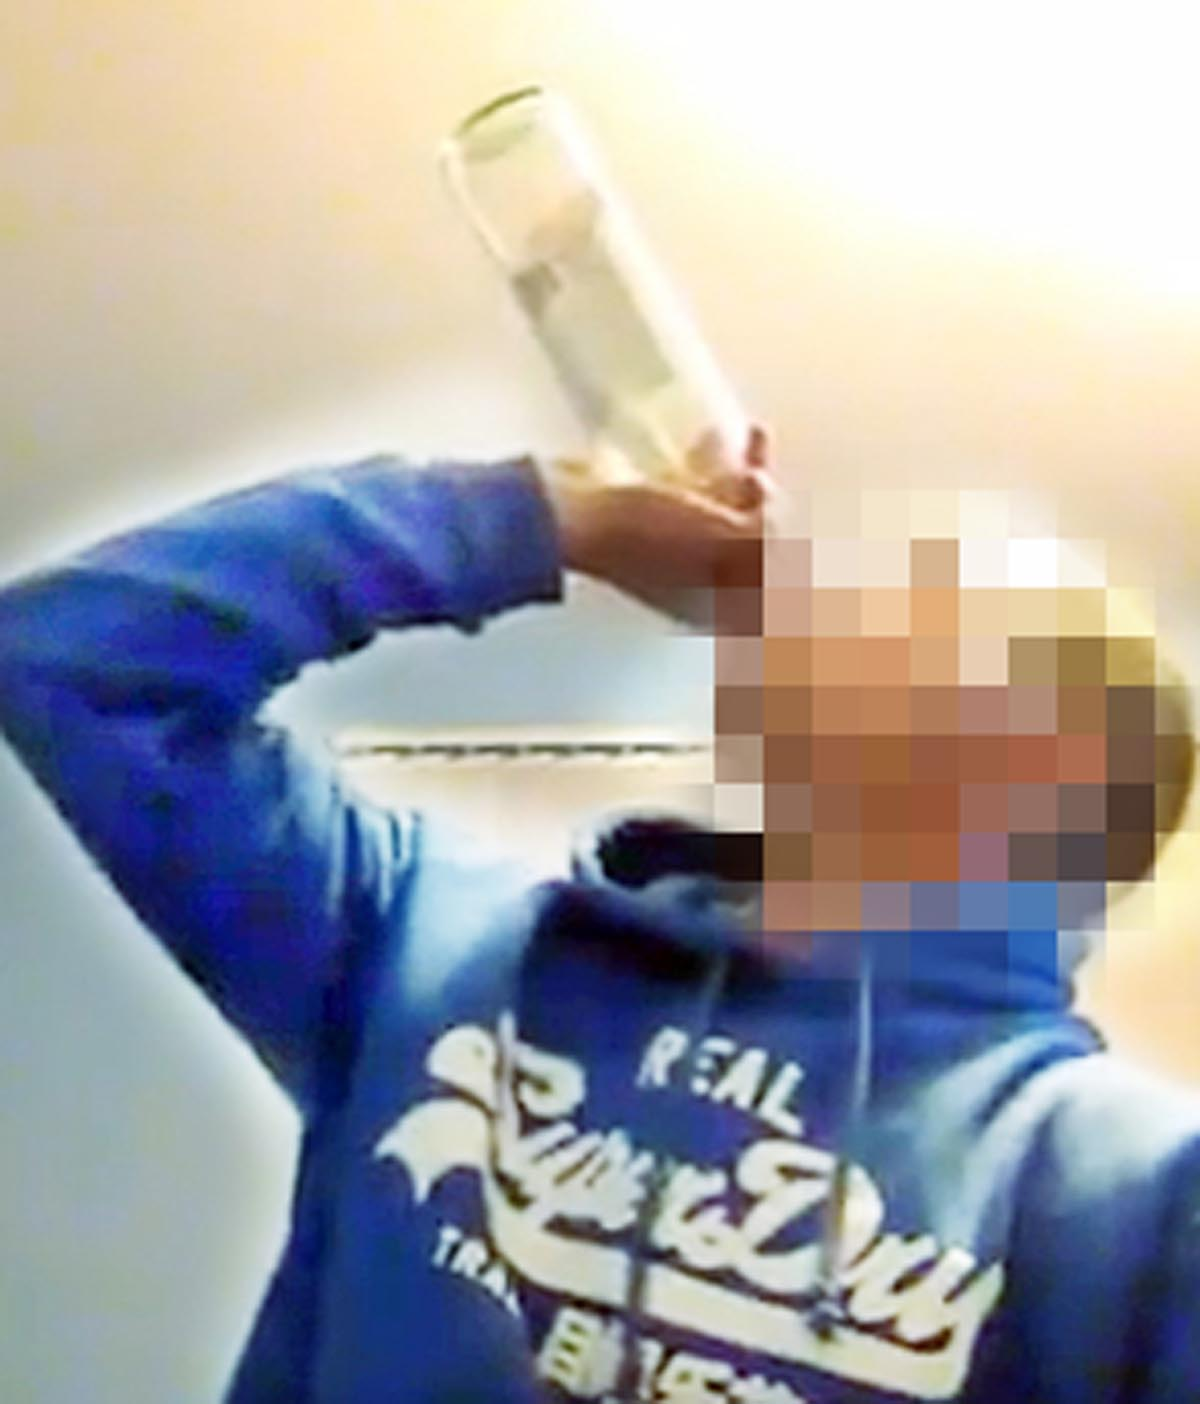 East Lancashire children urged to stay clear of 'NekNominate' craze